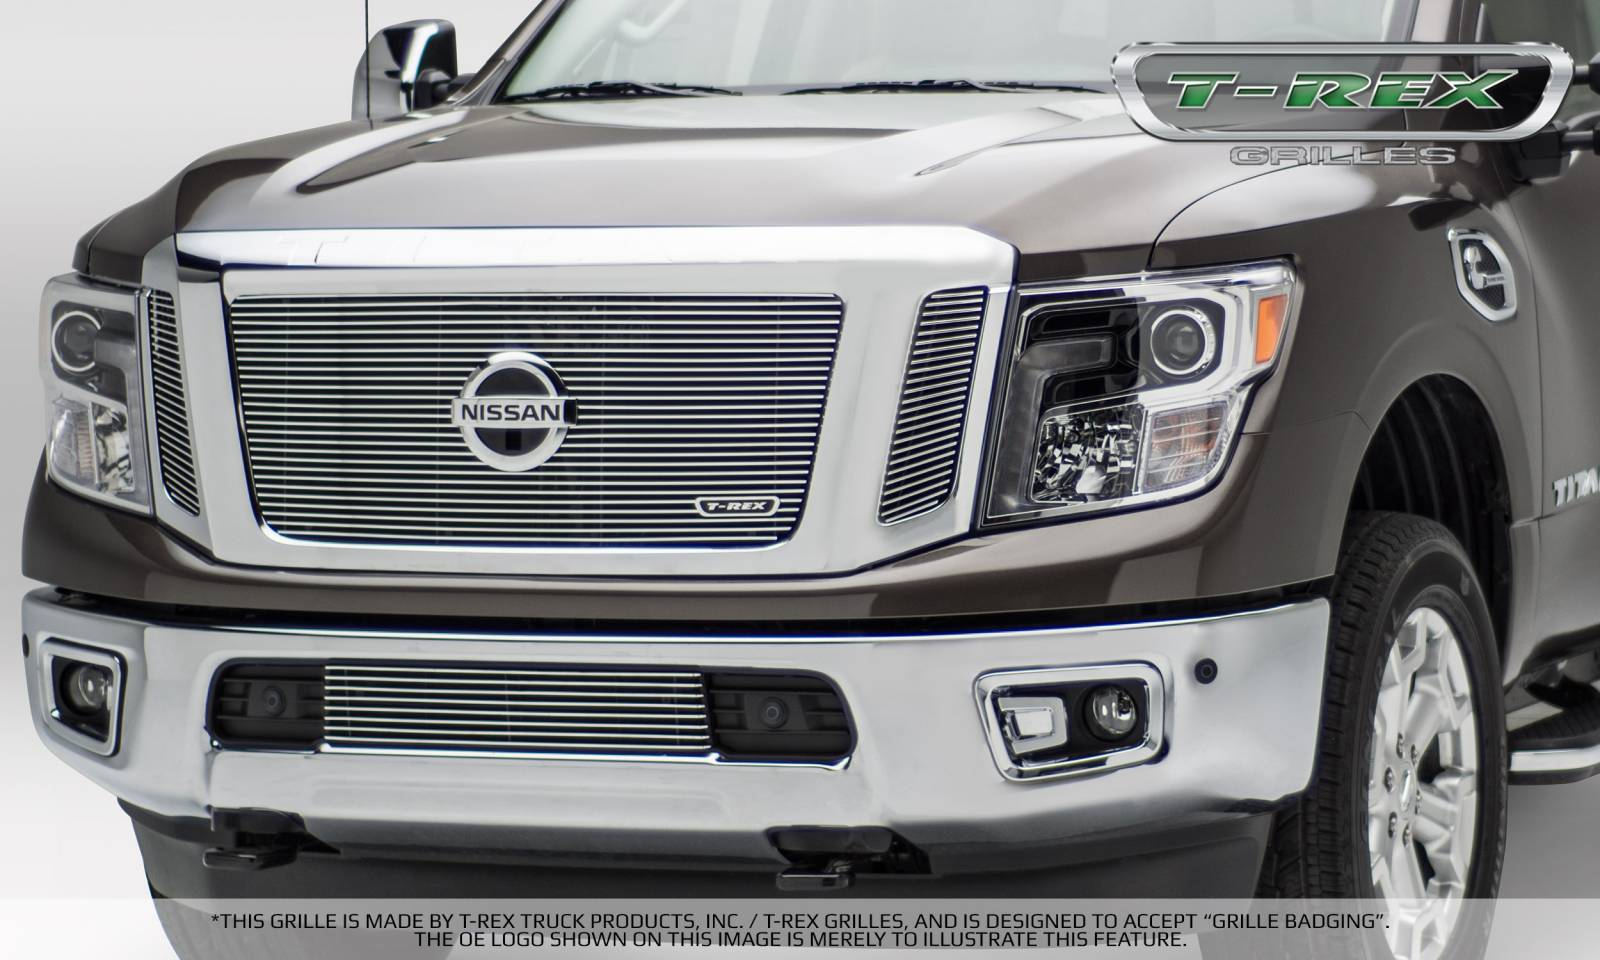 T-REX Grilles - Nissan Titan - Billet Series - 3 Pc Insert - Main Grille w/ Logo Mounts - Polished - Pt # 20785